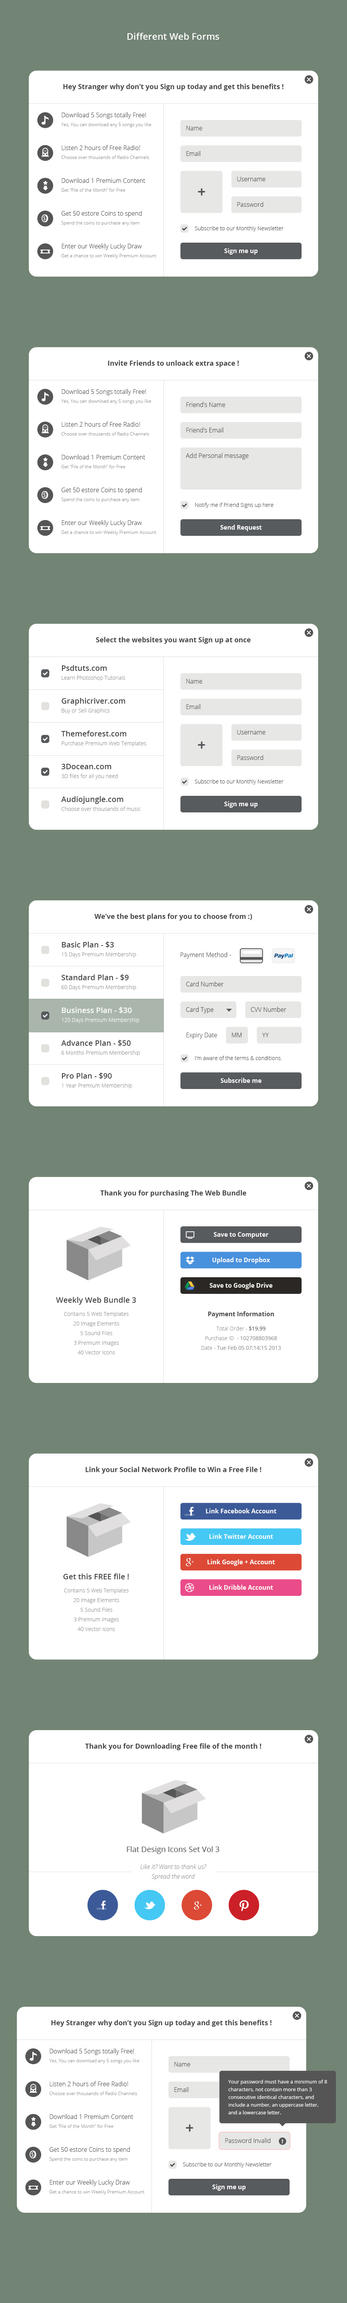 Different Web Forms by azyrusmax